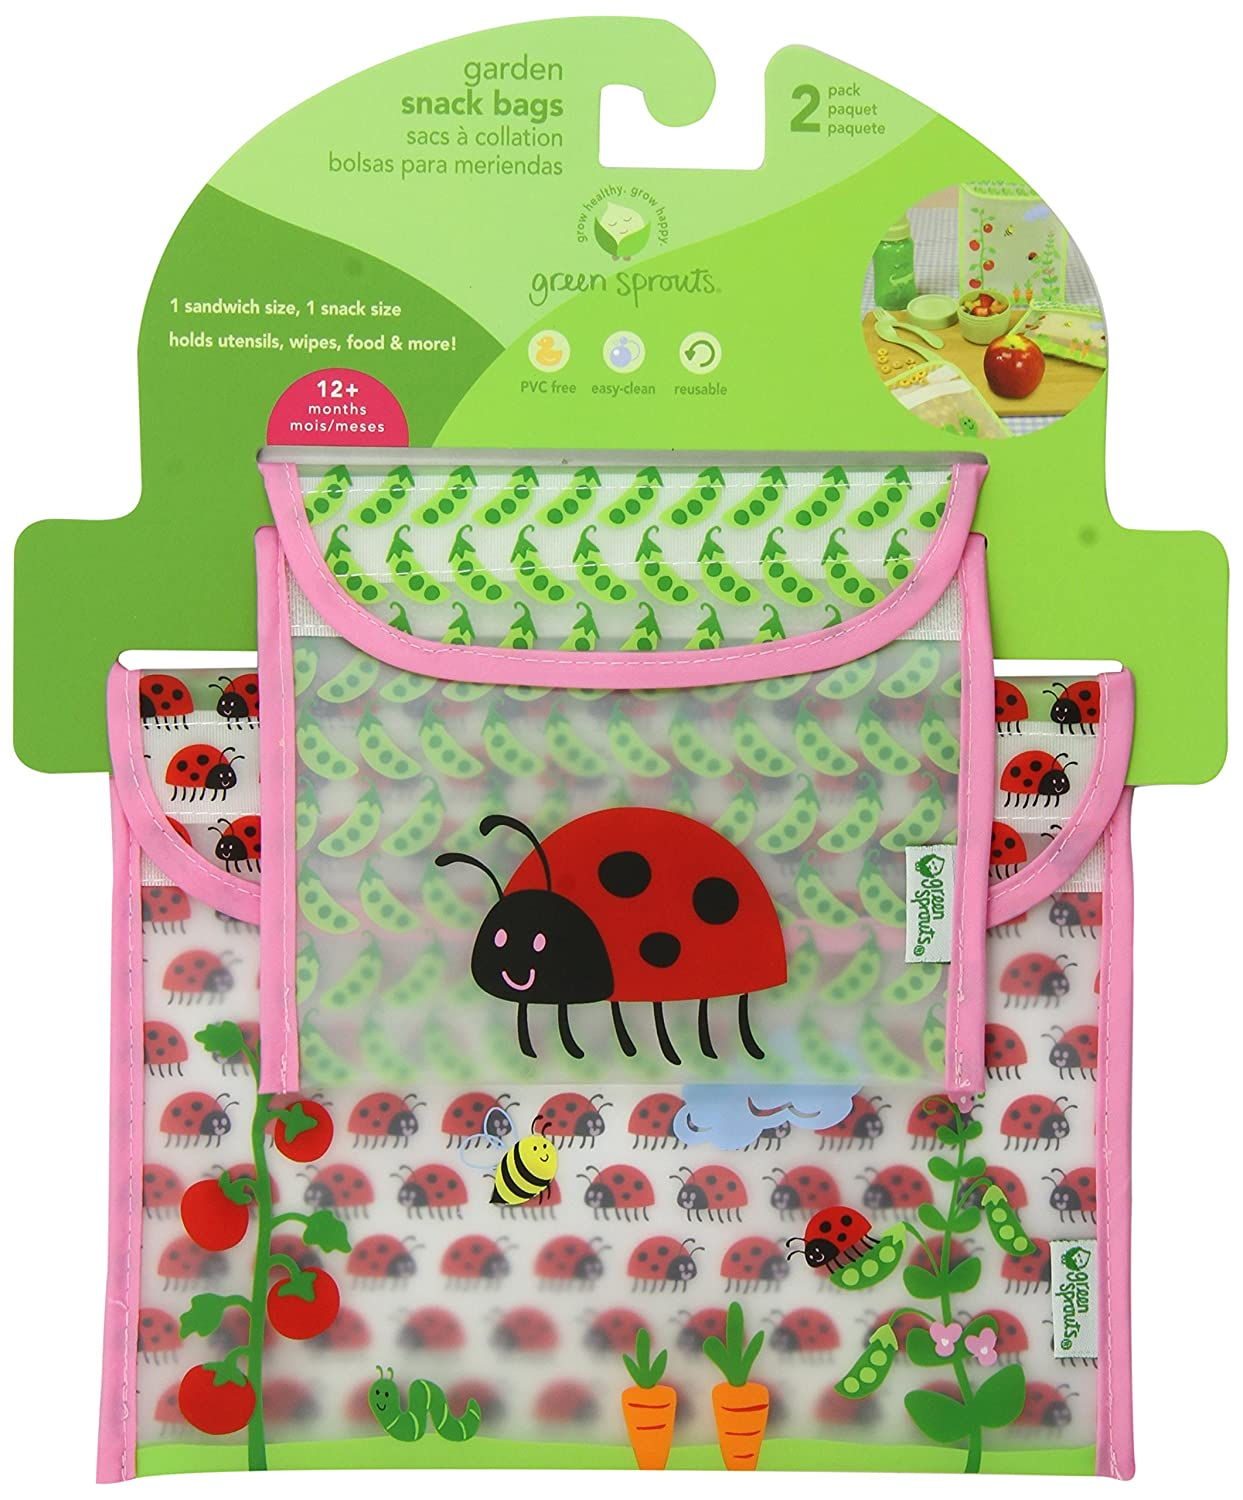 green sprouts Garden Sandwich and Snack Bag, Pink Ladybug, 3 Months, 2-Count (Discontinued...